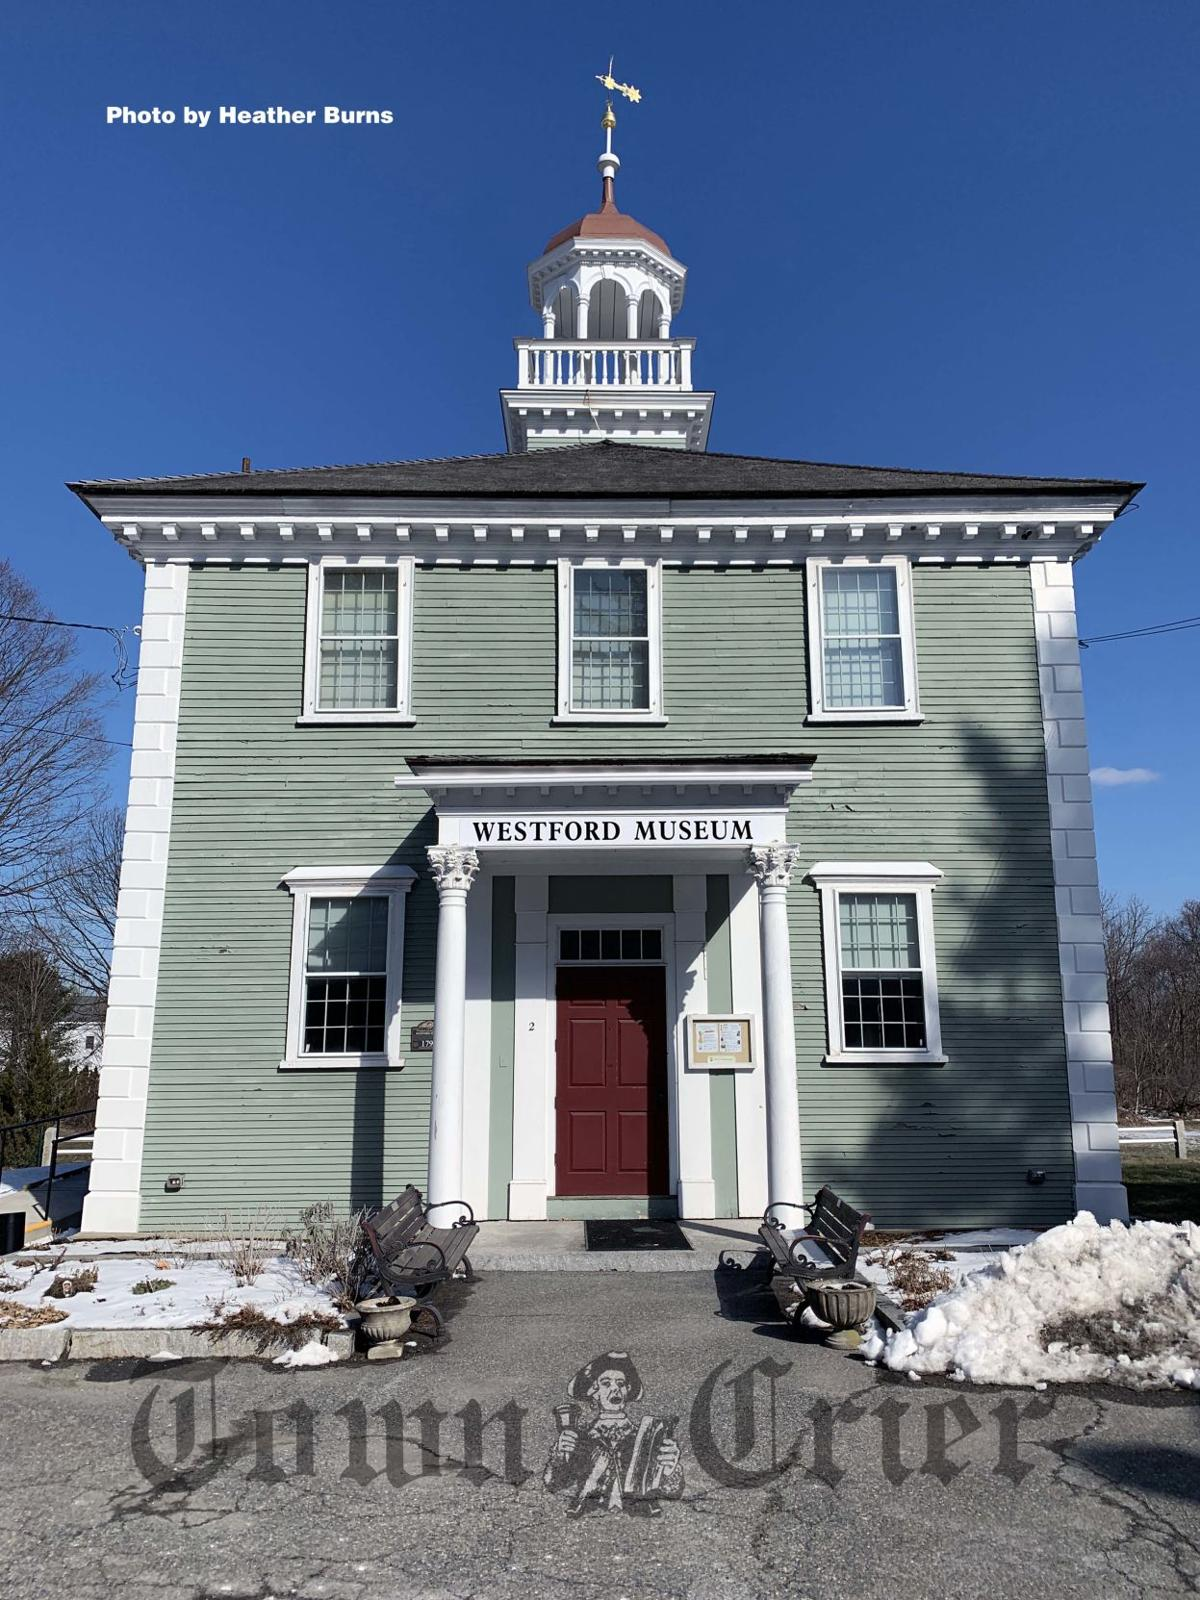 The Westford Historical Society and Museum